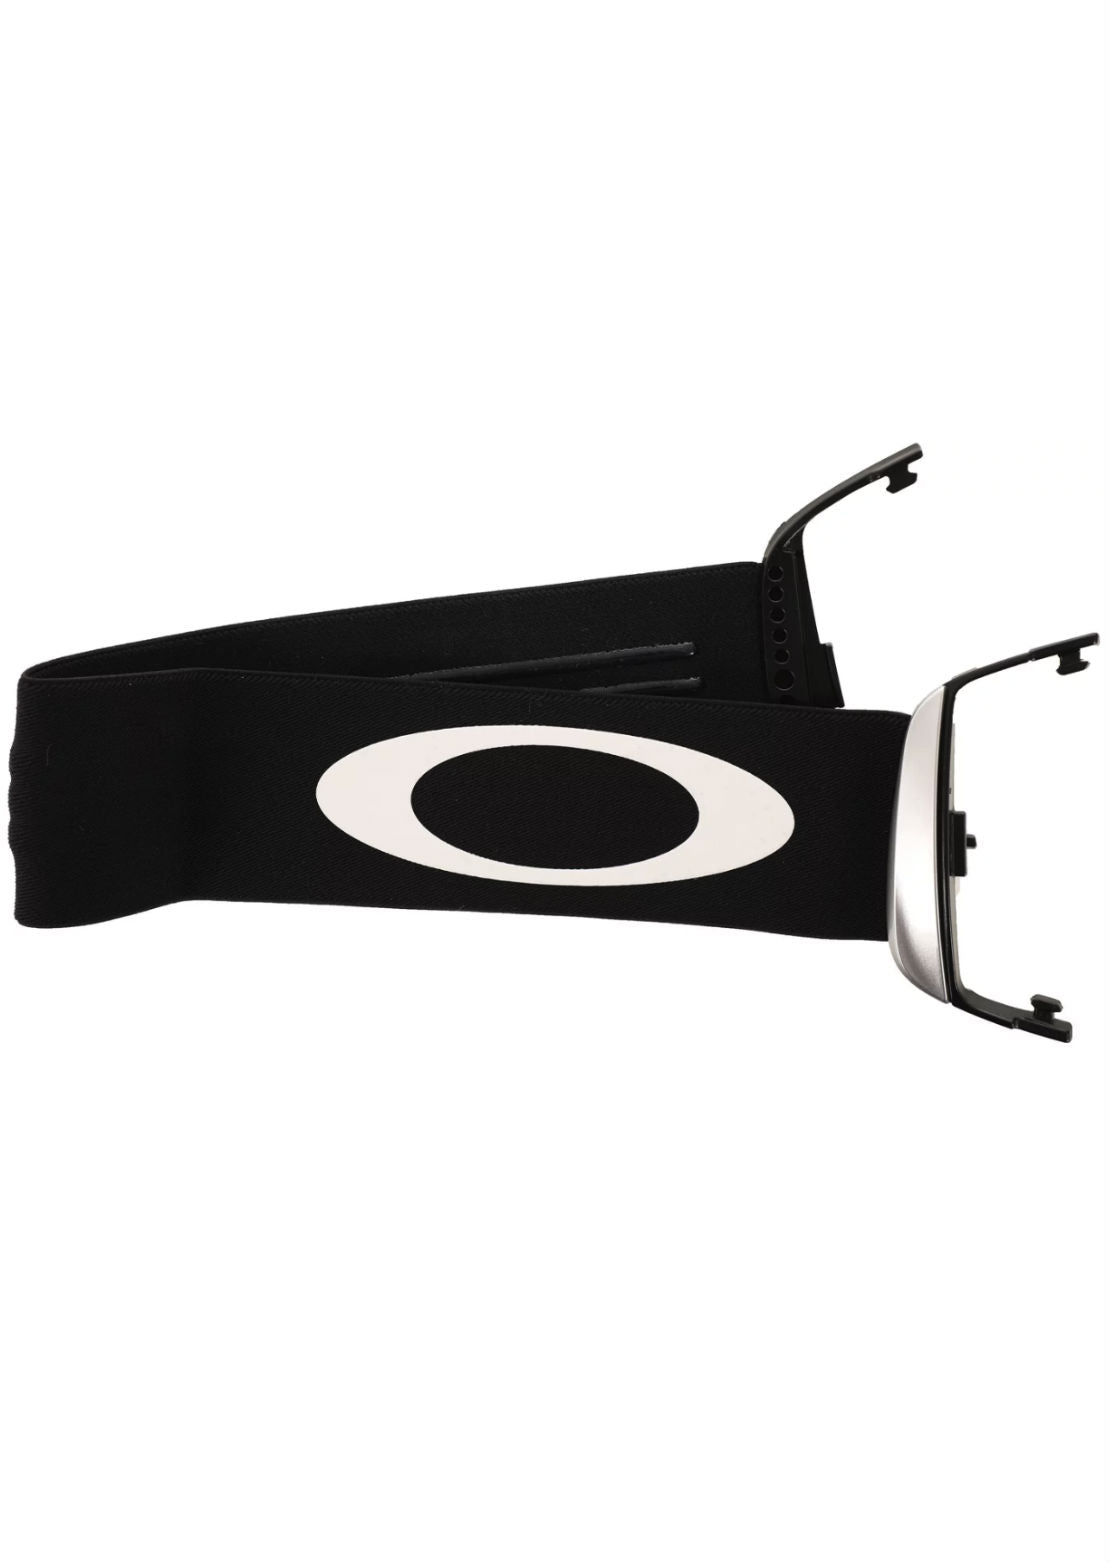 Oakley Flight Deck Pro Strap Accessory Kit Wide - 50 mm